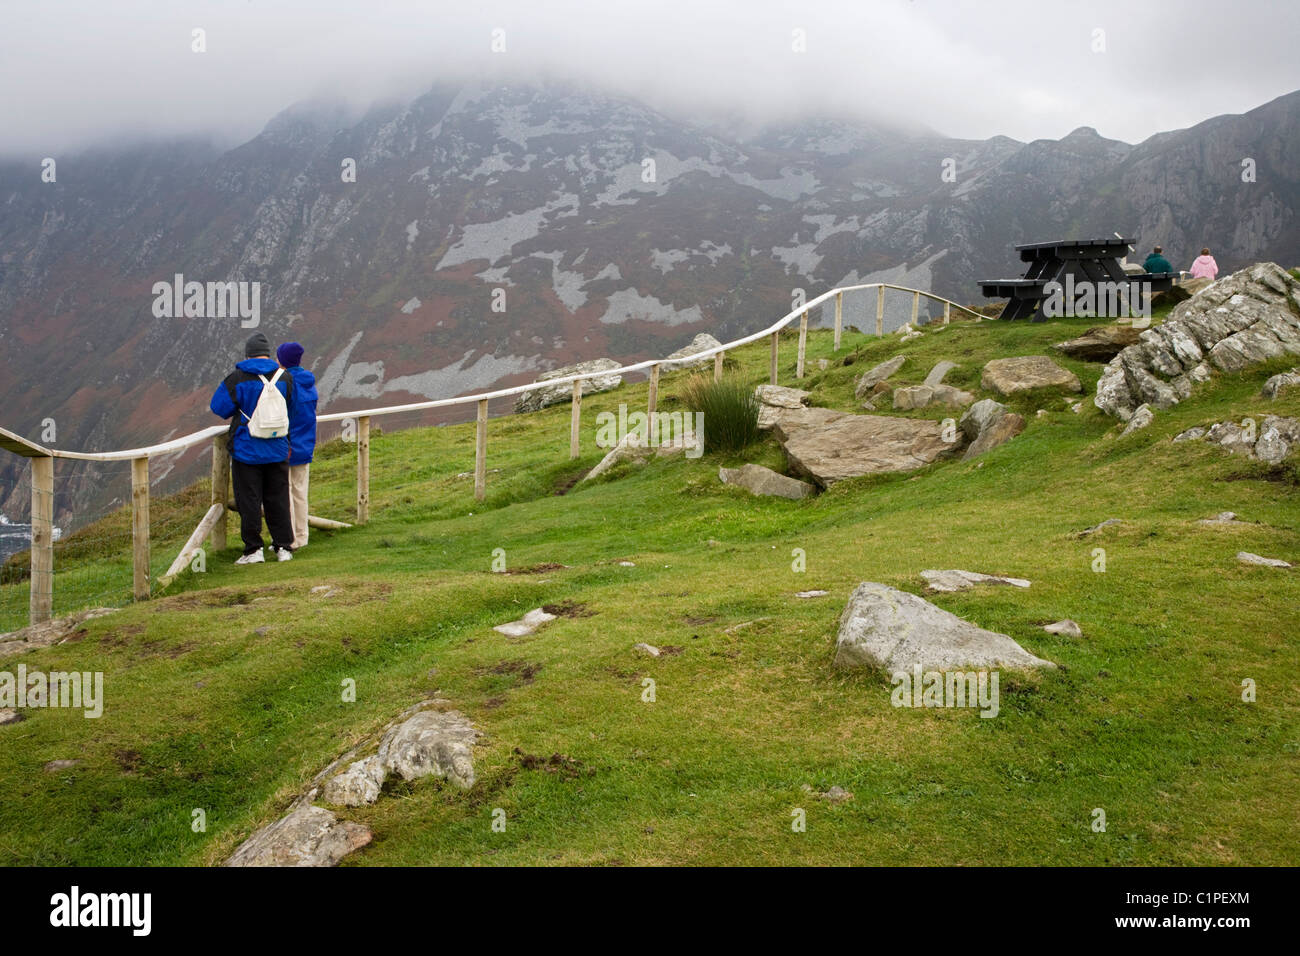 Republic of Ireland, County Donegal, Slieve League, people leaning on fence on clifftop - Stock Image